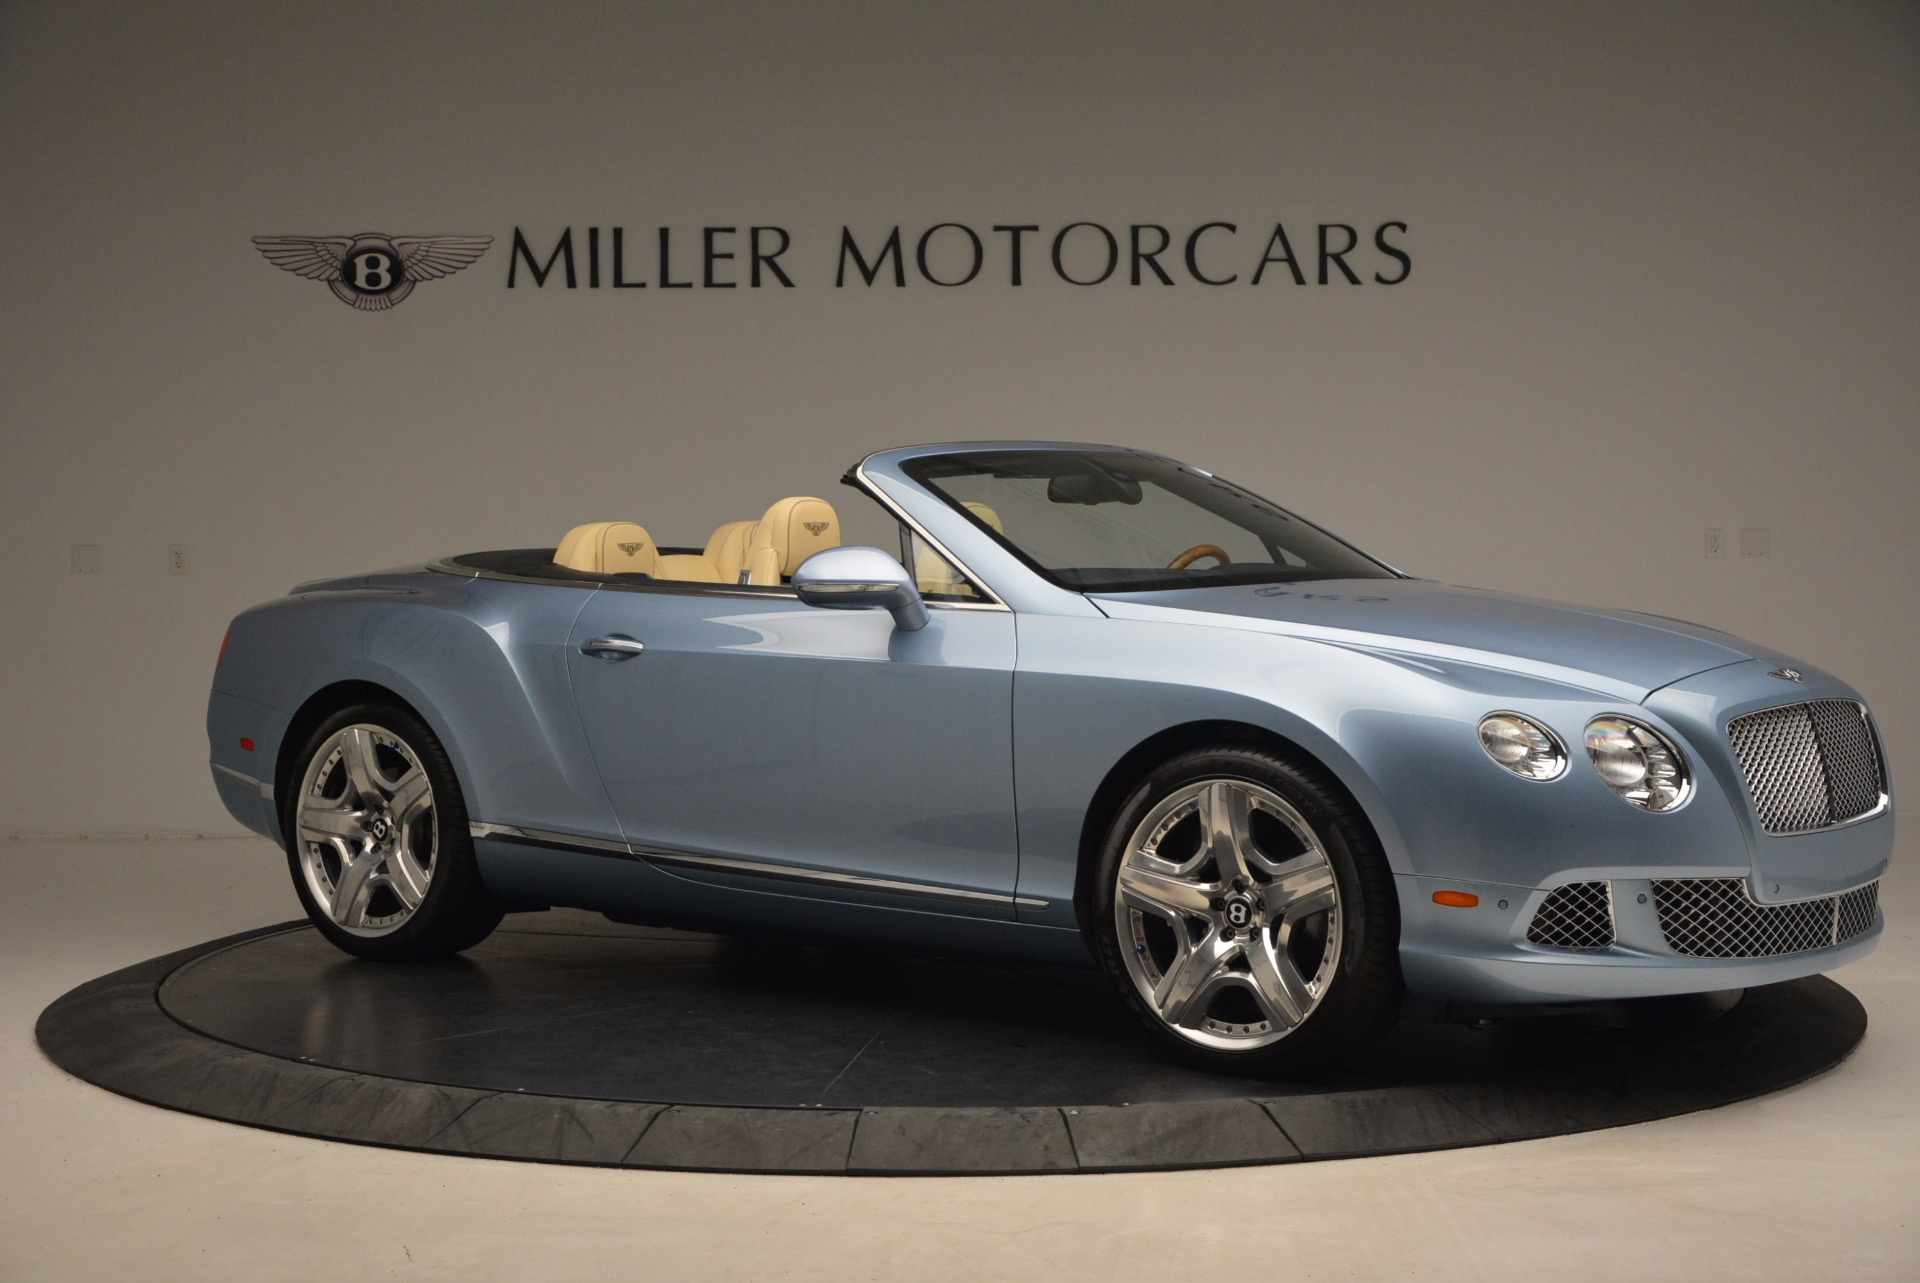 Used 2012 Bentley Continental GTC W12 For Sale In Westport, CT 1475_p10